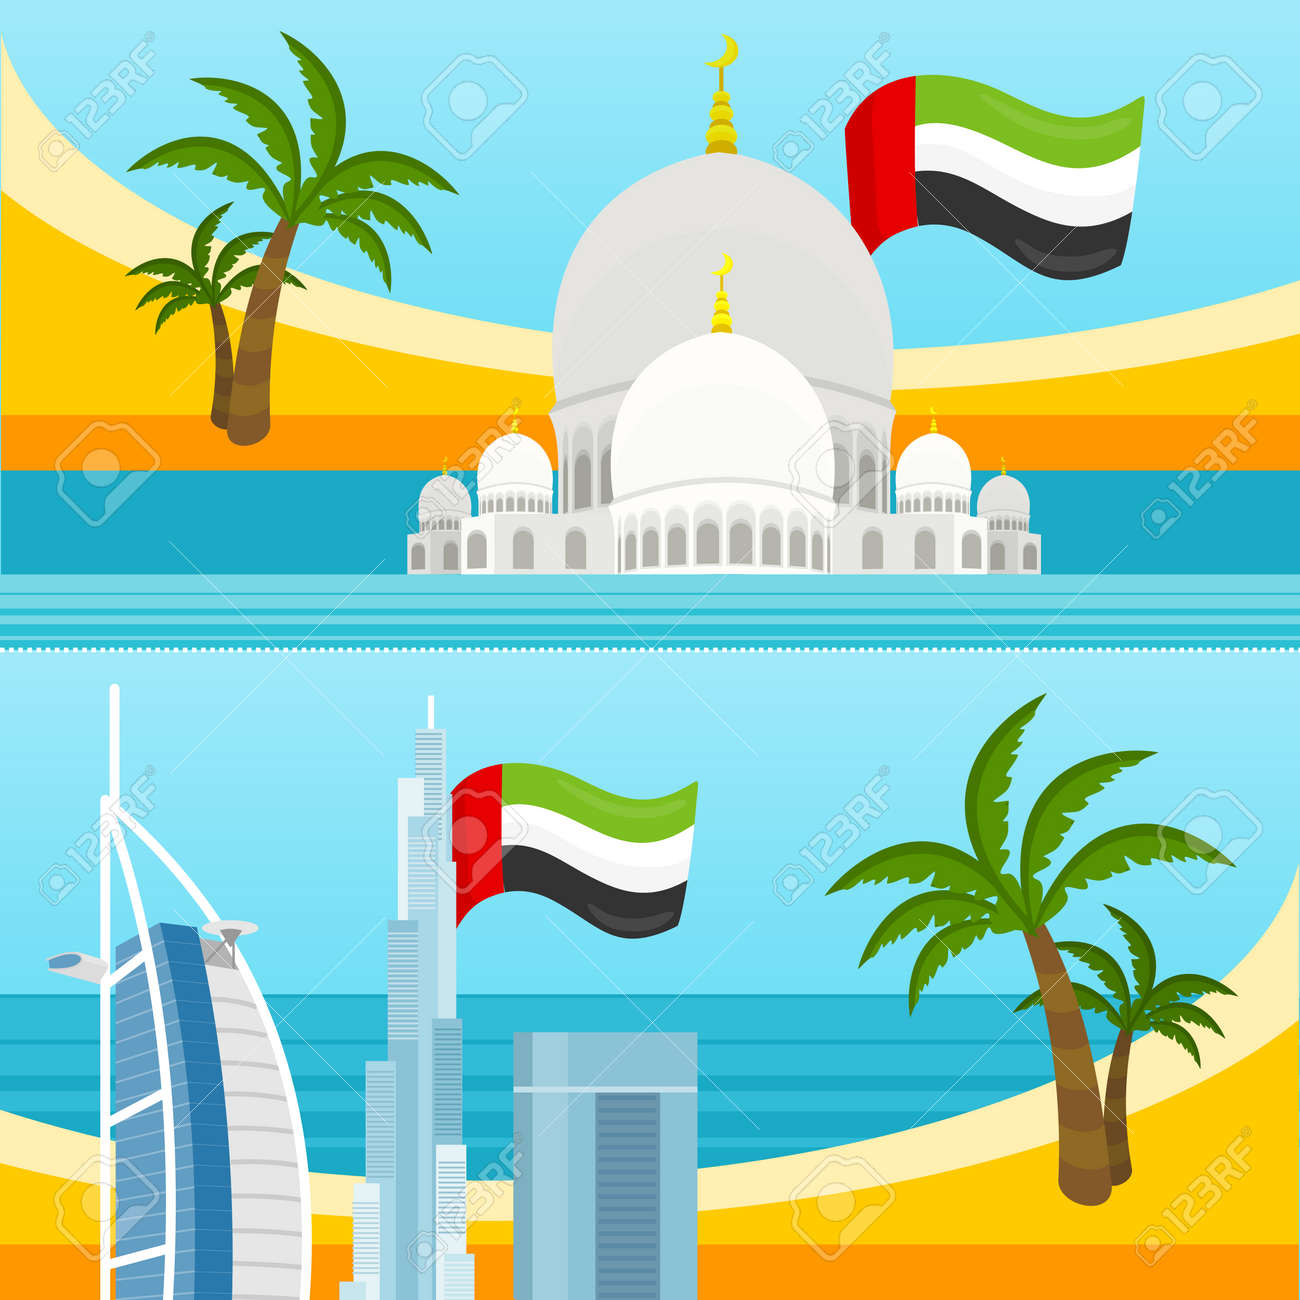 Poster design landscape - Set Of United Arab Emirates Tourism Posters Design With Attractions Emirates Landmark With Flag